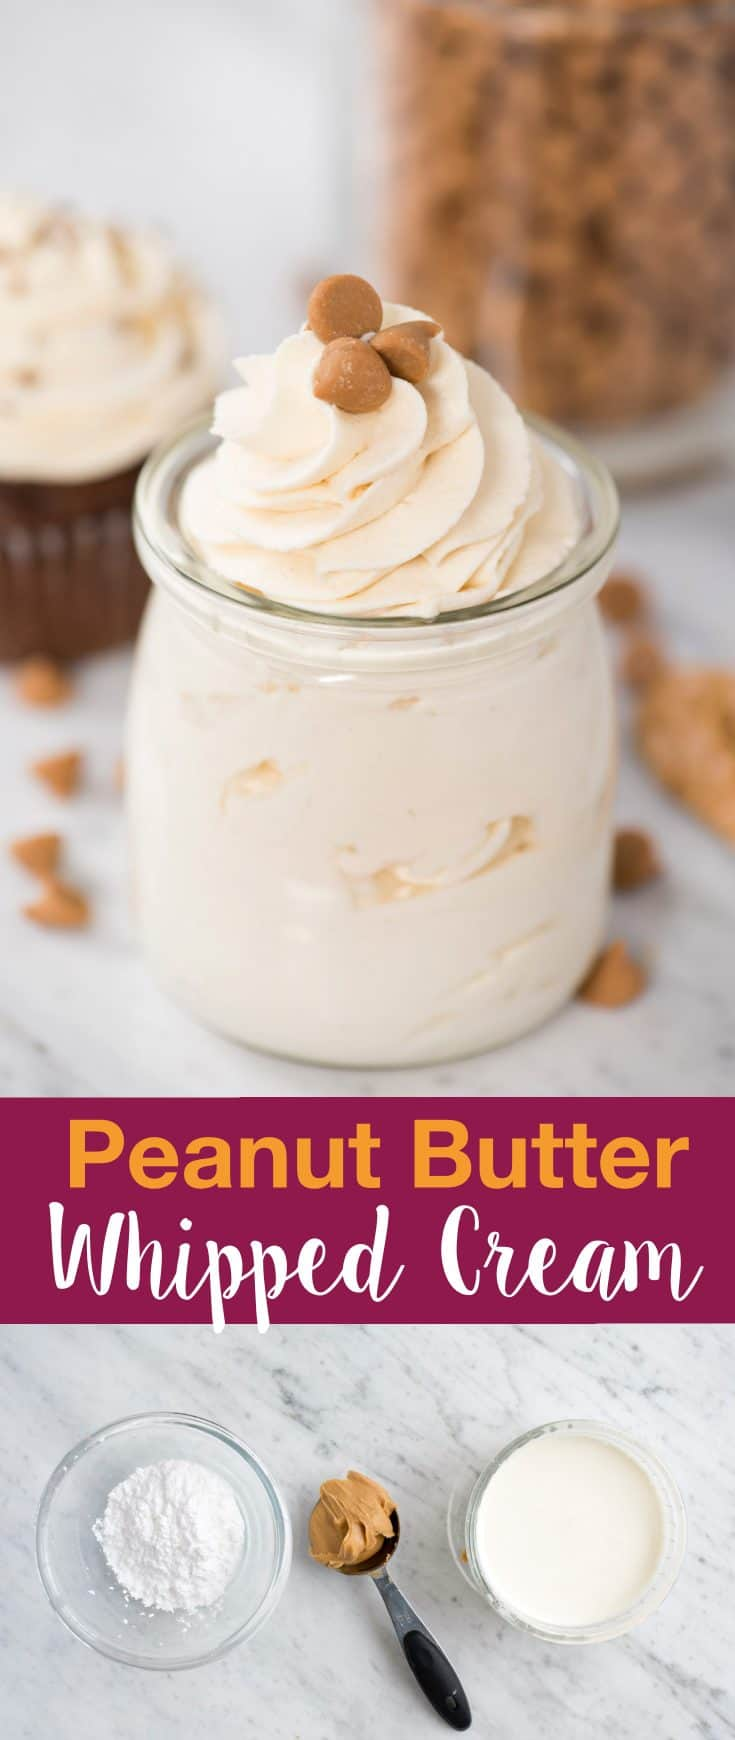 Easy to make peanut butter whipped cream frosting! This peanut butter whipped cream makes a great frosting for cake & cupcakes. Includes recipe note for how to make keto peanut butter whipped cream.